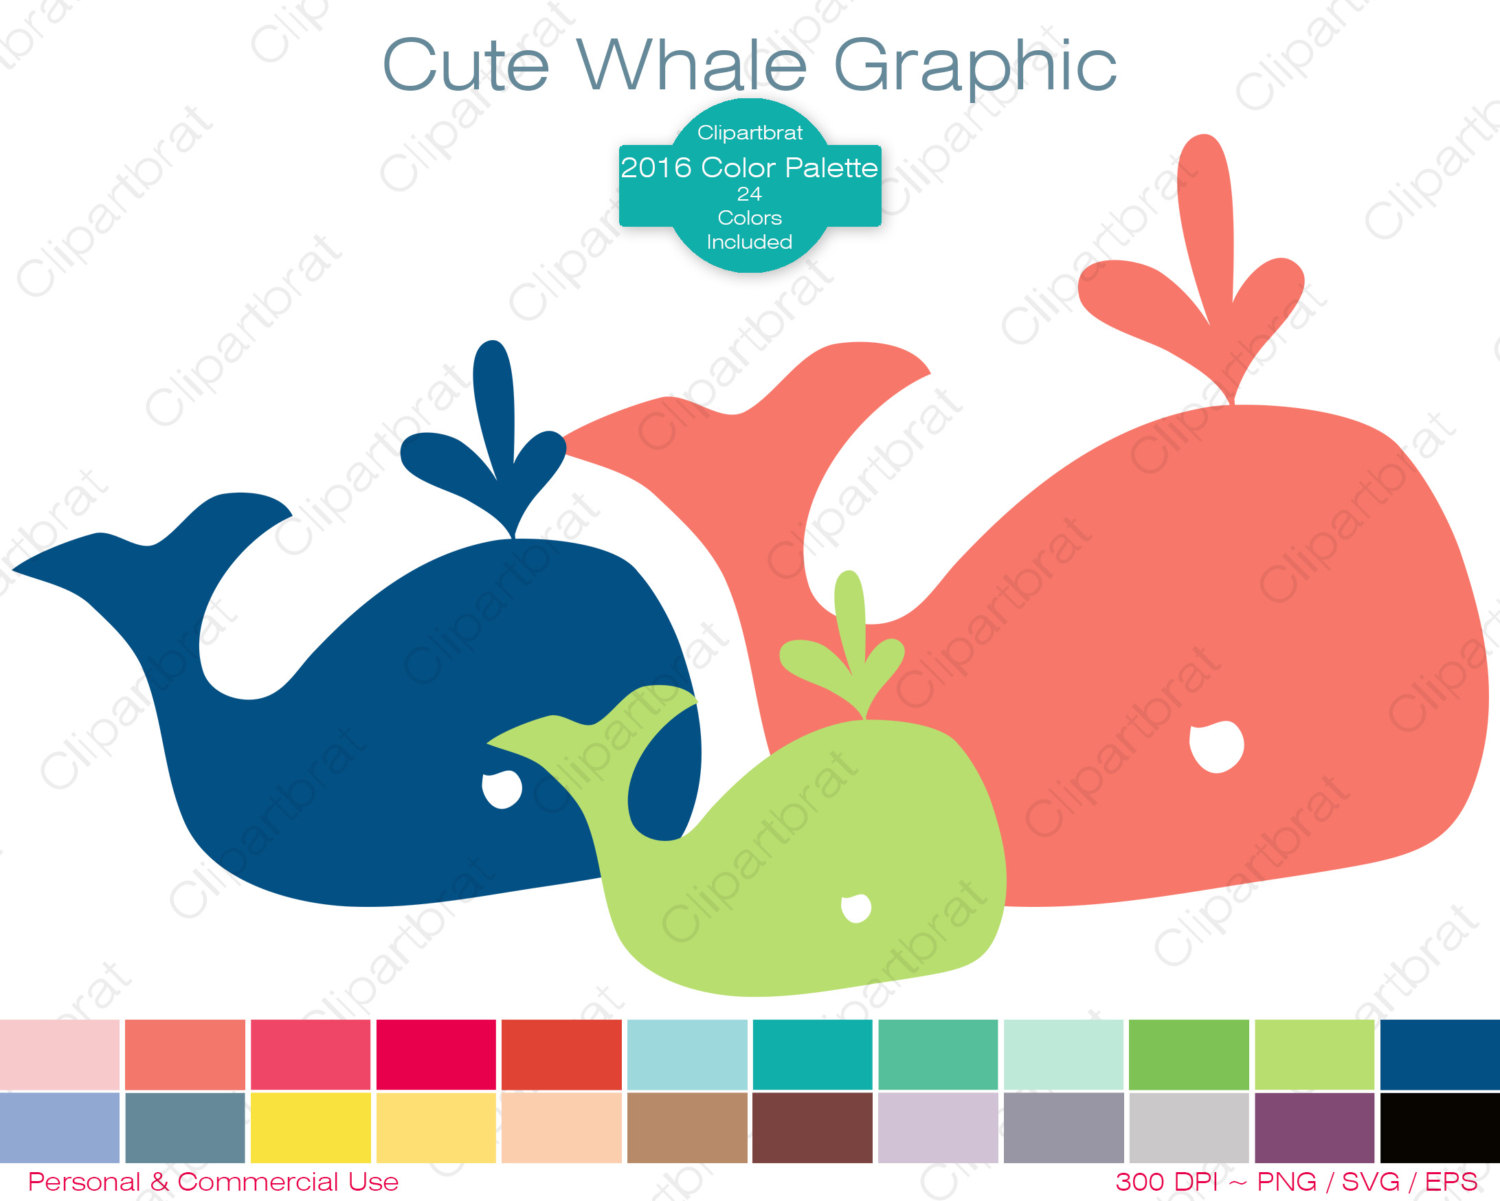 WHALE Clipart Commercial Use Clipart CUTE WHALE Graphic 2016 Color.